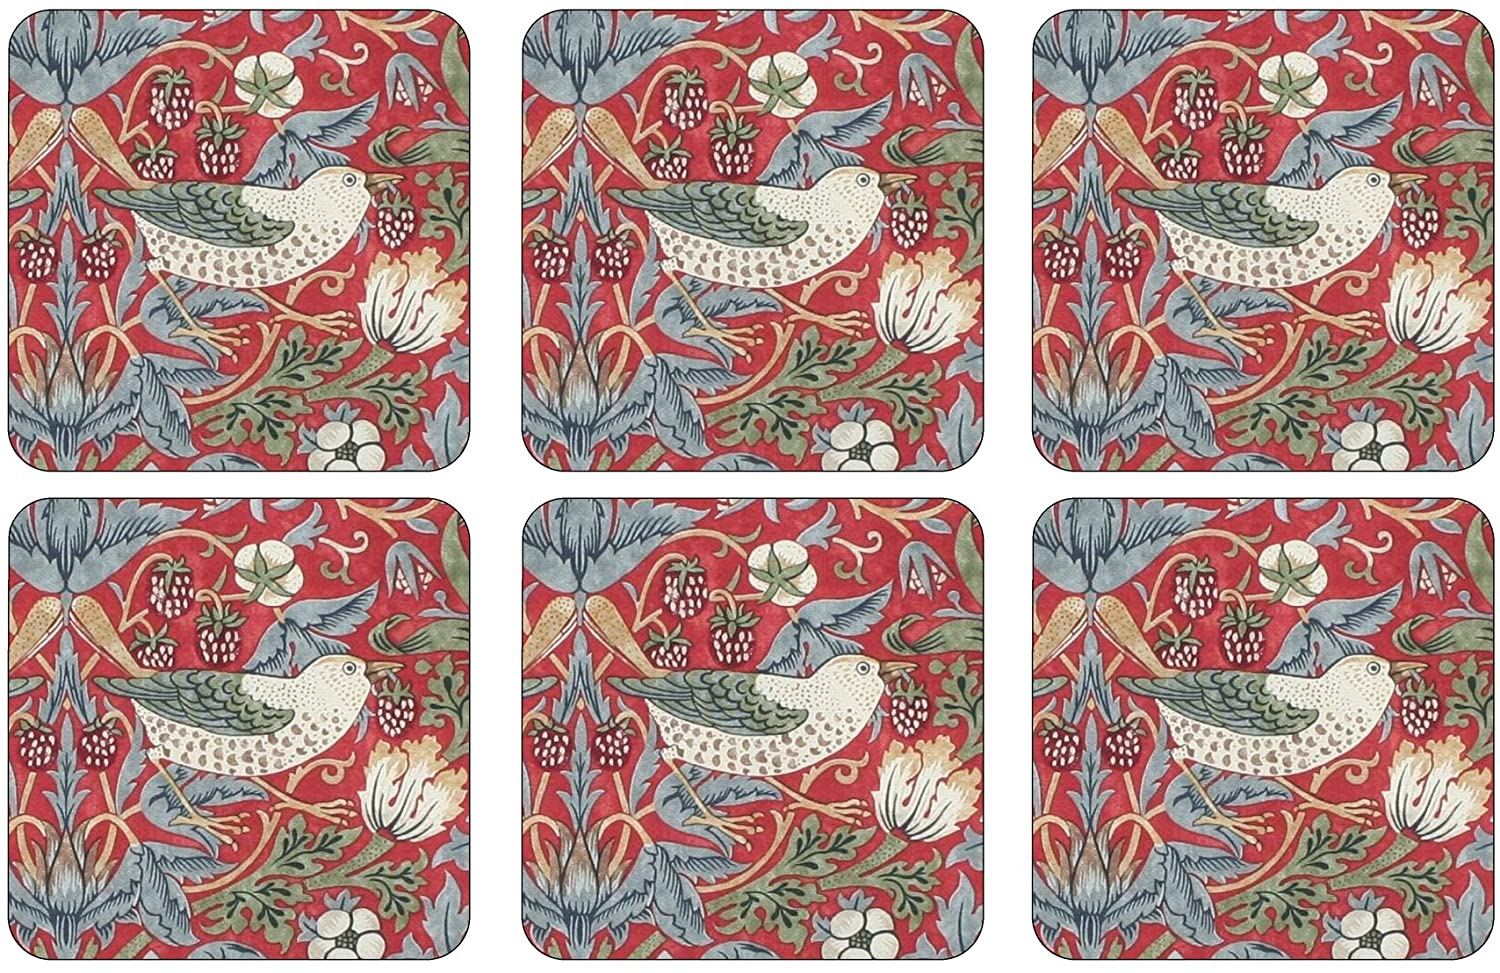 Morris & Co for Pimpernel Strawberry Thief Collection Red Coasters - Set of 6